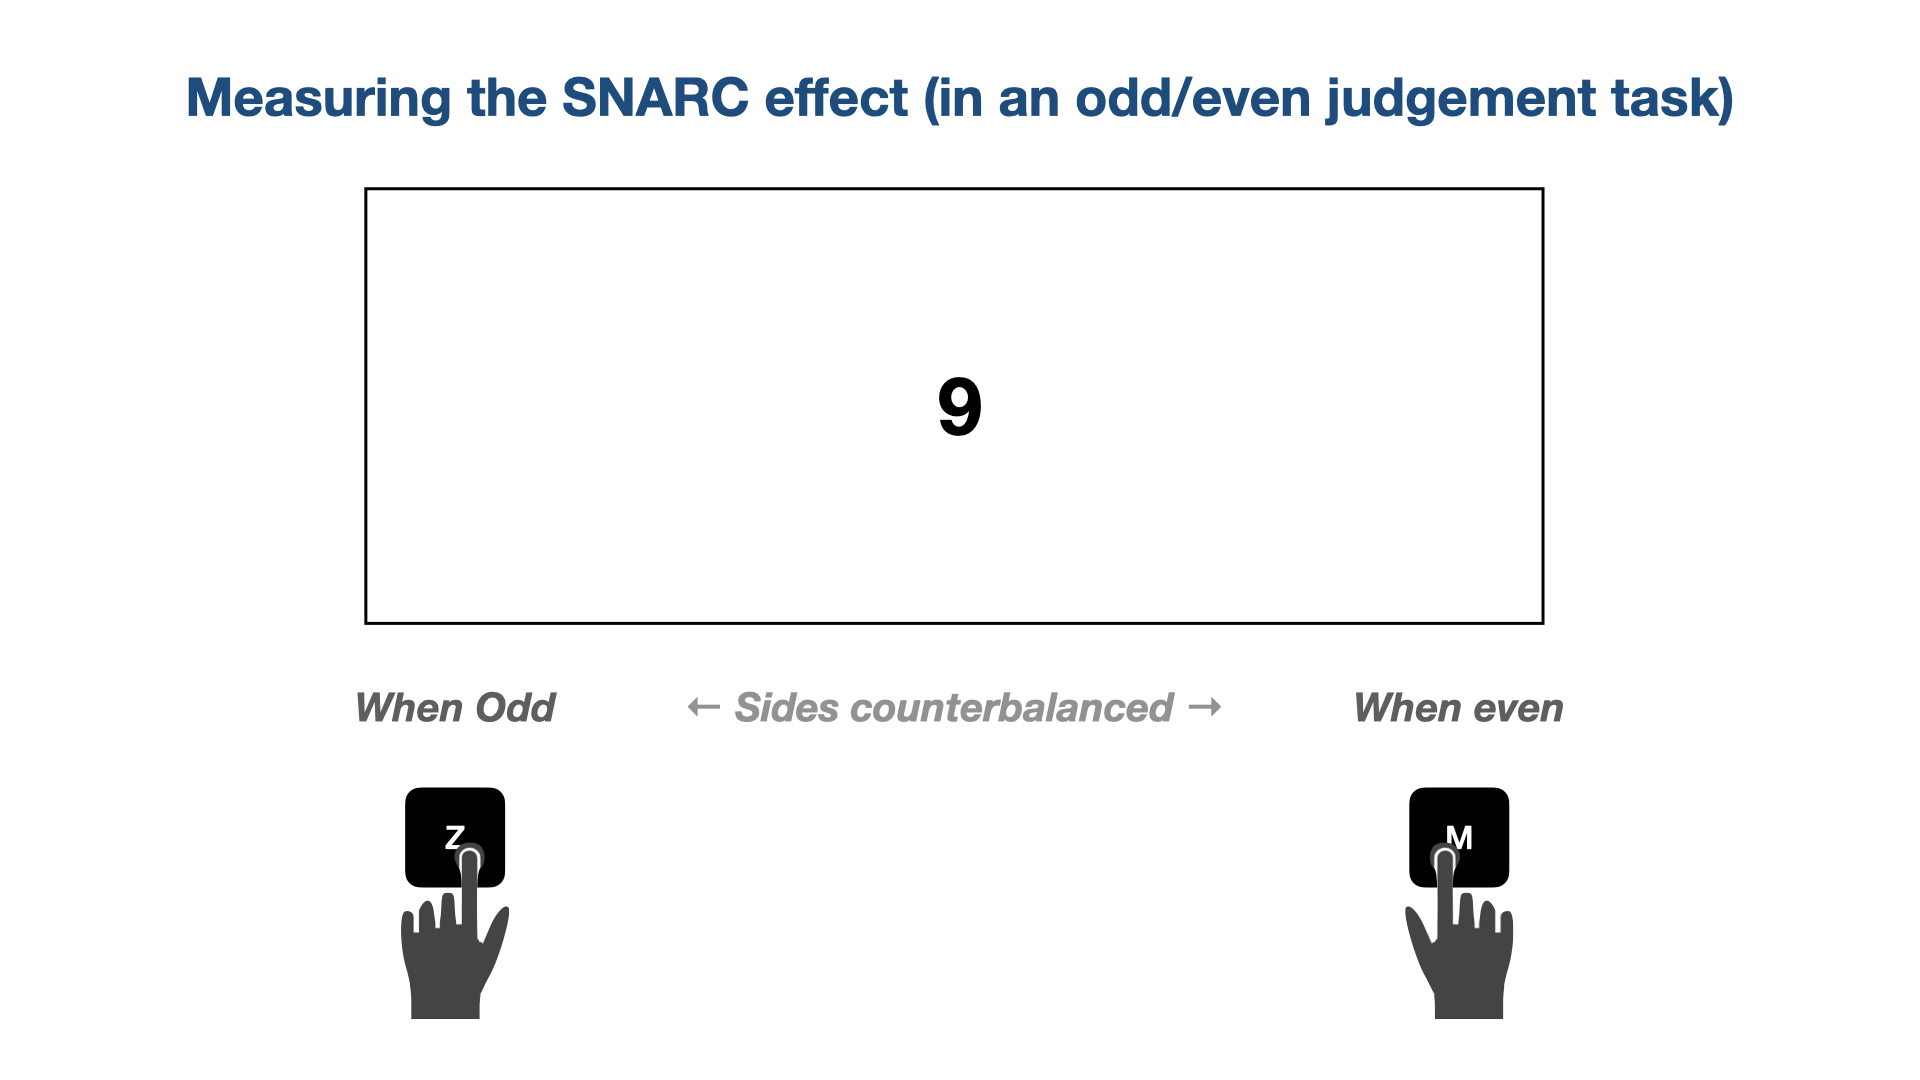 Illustration of odd/even judgement task from the participants' view to measure the SNARC effect.